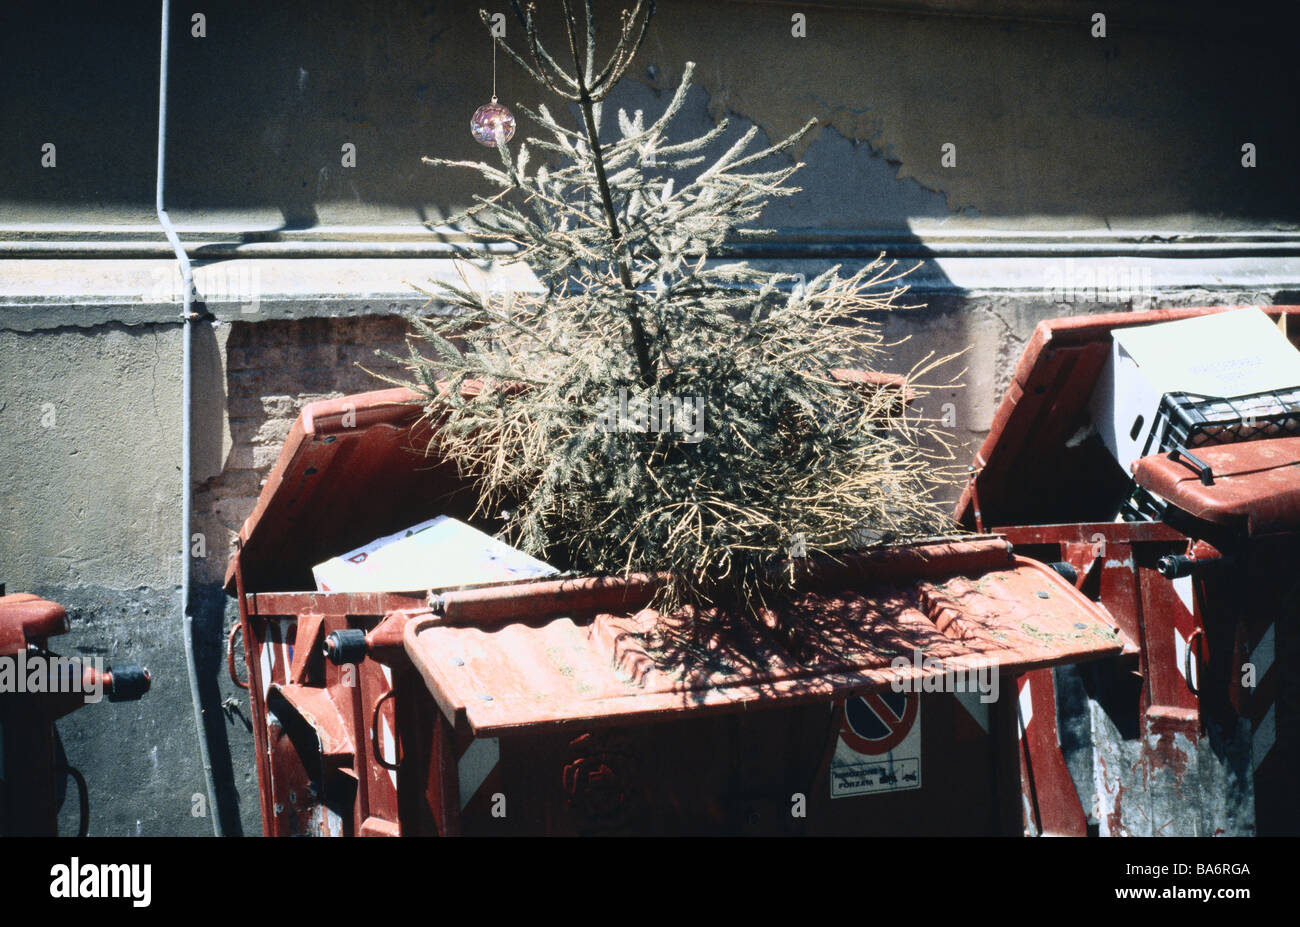 house wall waste containers christian tree christmas tree fir tree waste disposal - Christmas Tree Containers